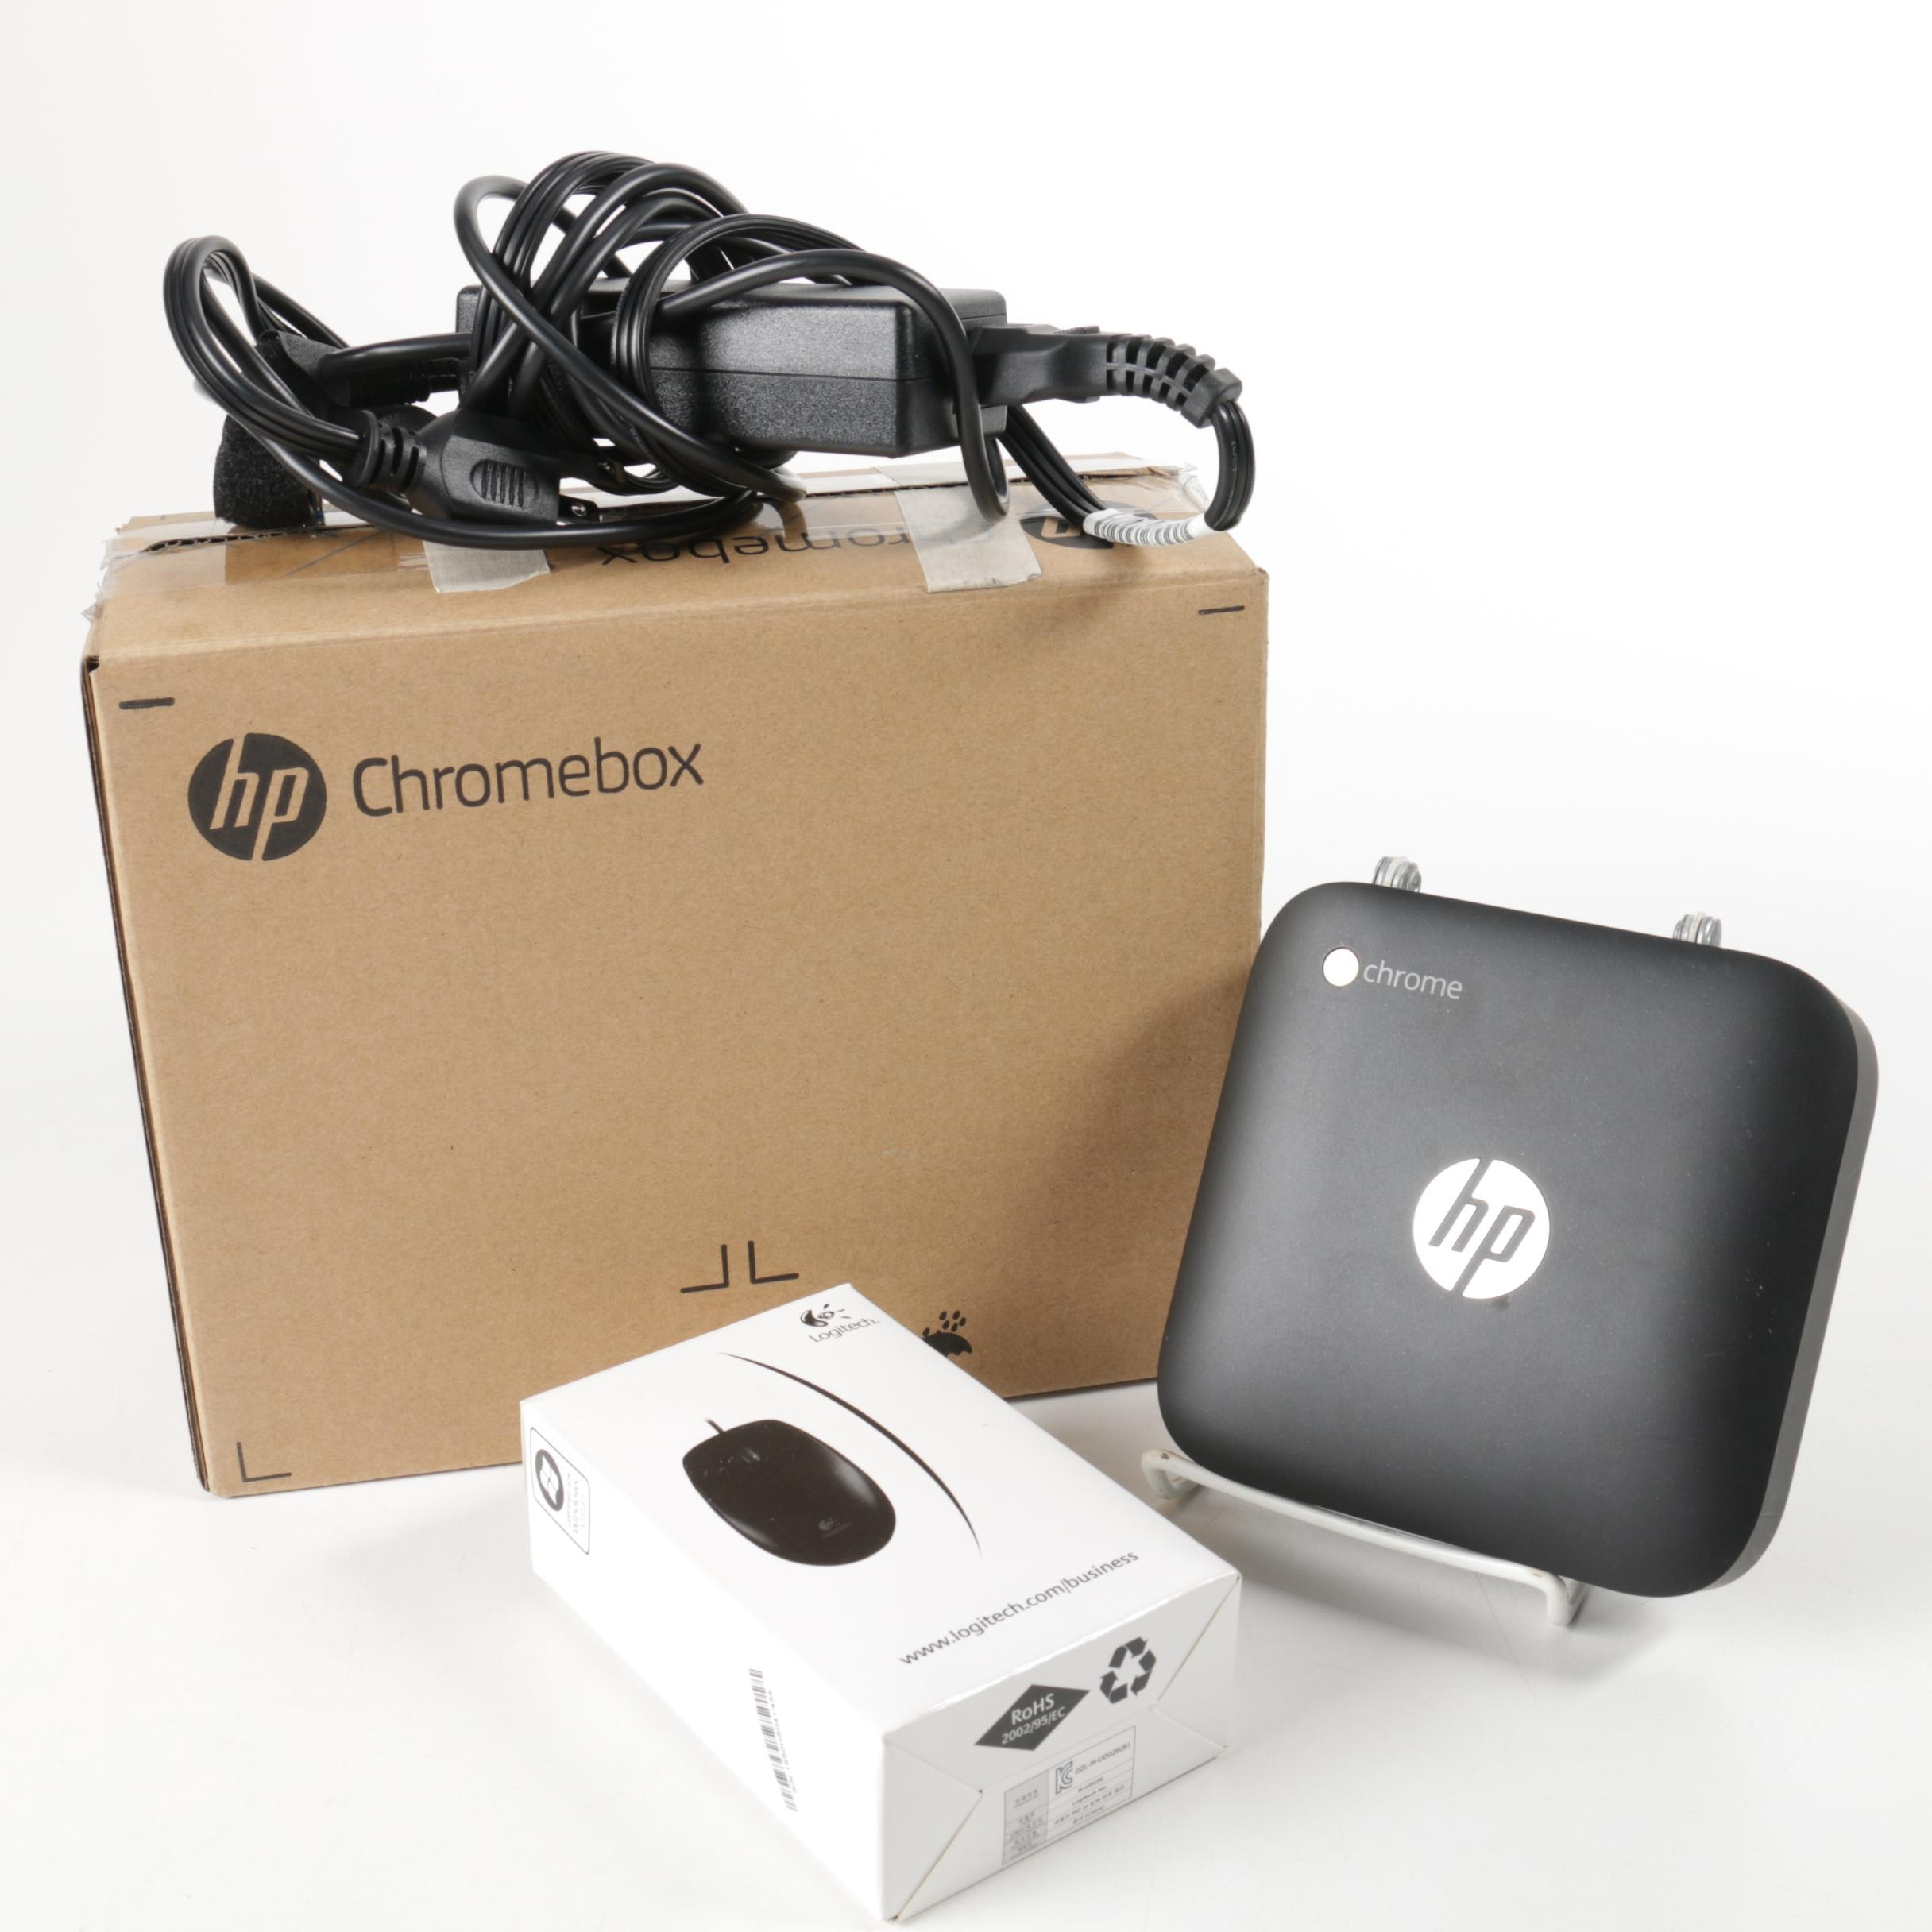 HP Chromebook with Logitech Mouse